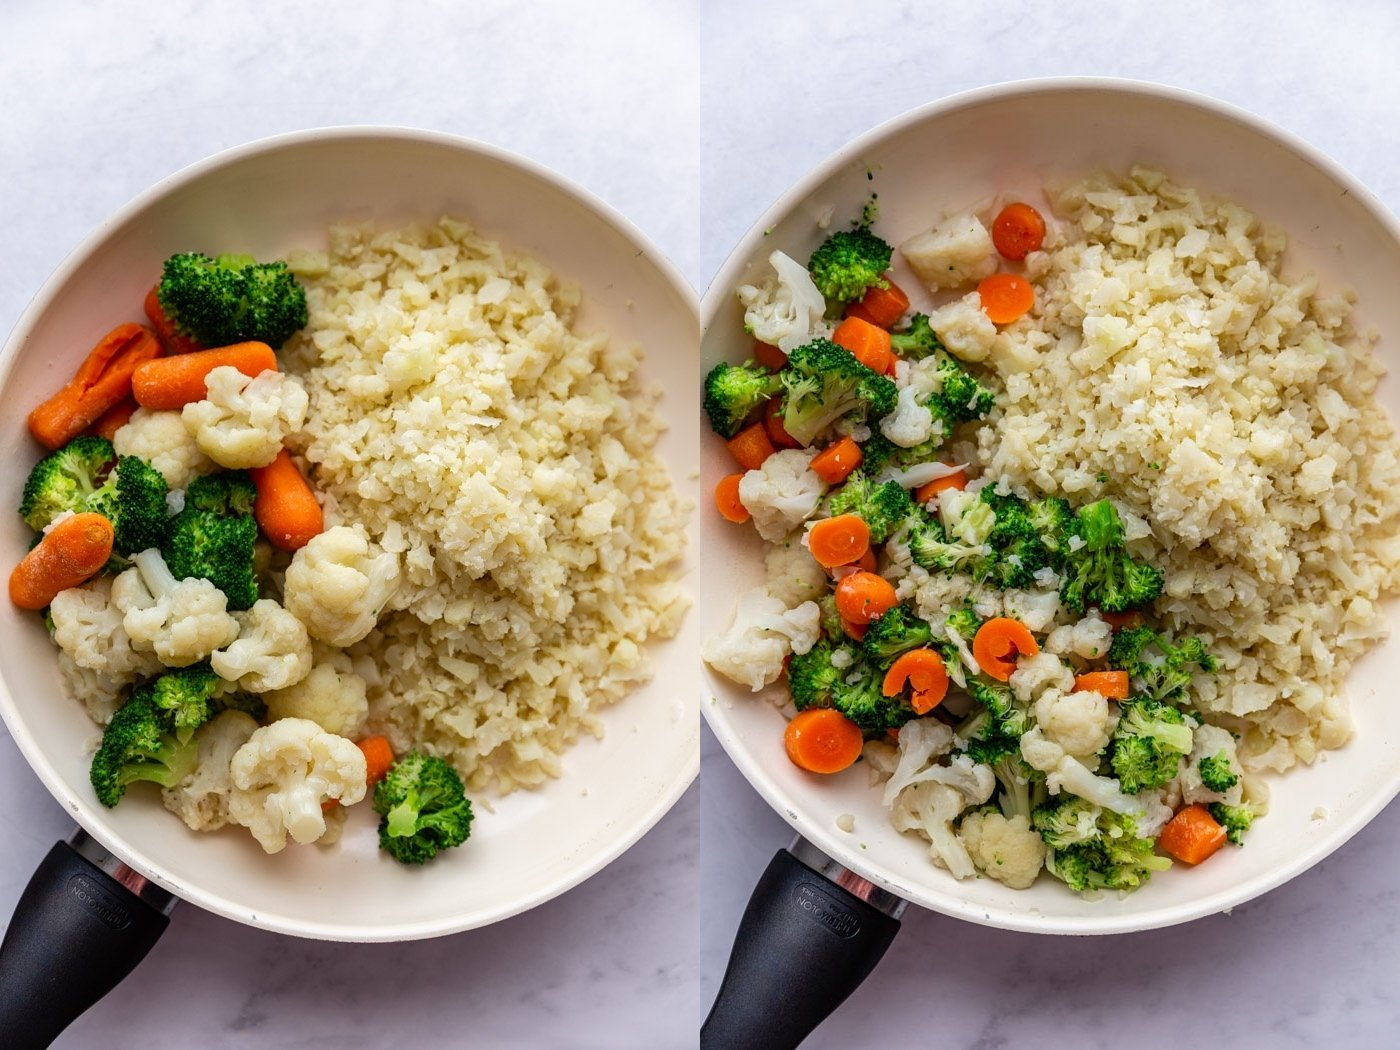 side by side images. Left: cauliflower rice in a skillet with steamed vegetables on the other side of the skillet. Right image: cauliflower rice in a skillet with steamed and chopped vegetables next to it